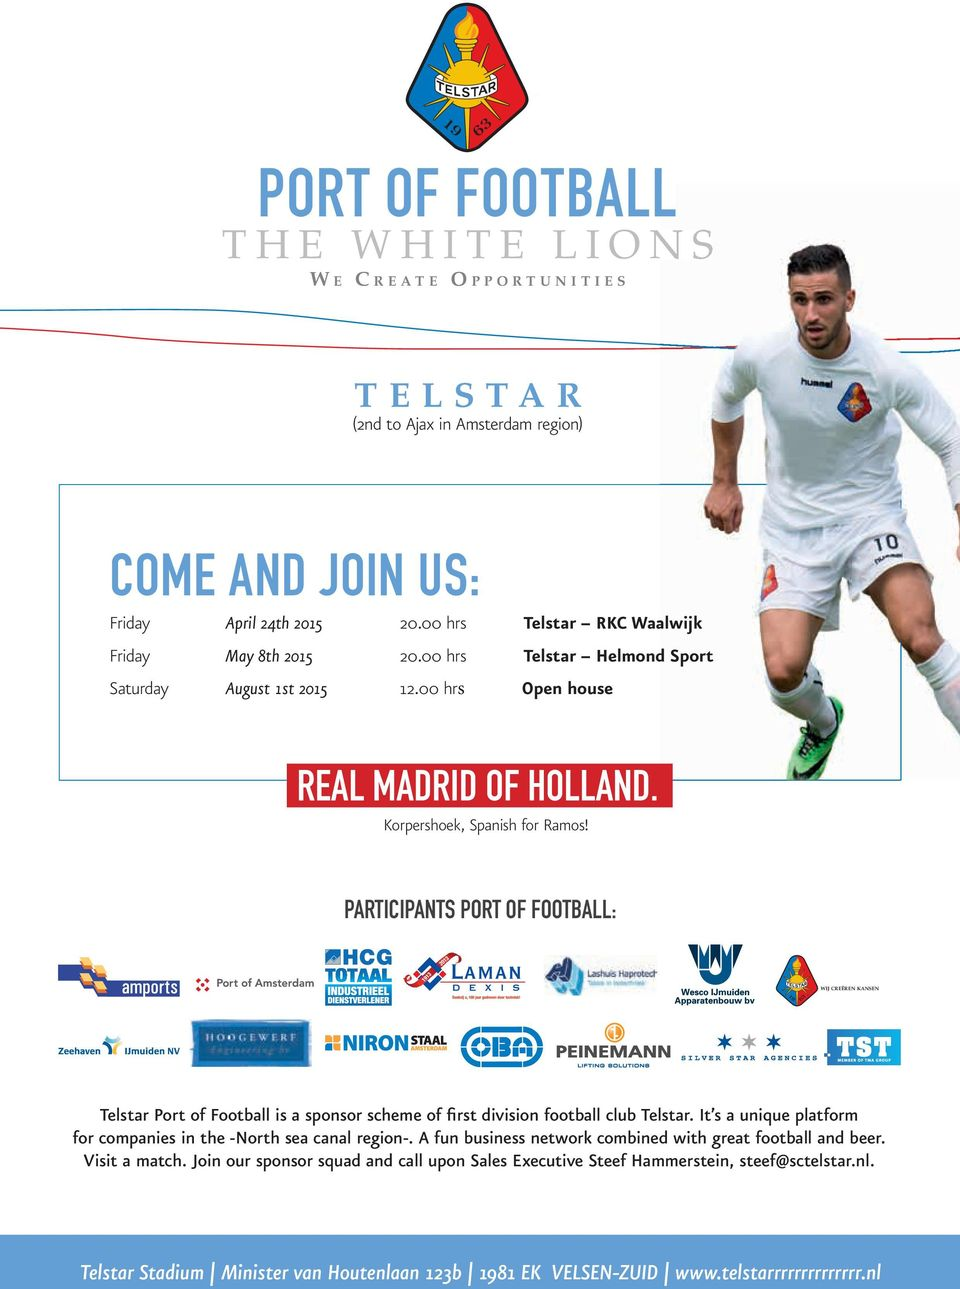 com) WIJ CREËREN KANSEN PORT OF FOOTBALL THE WHITE LIONS W E C R E A T E O P P O R T U N I T I E S T E L S T A R (2nd to Ajax in Amsterdam region) COME AND JOIN US: Friday April 24th 2015 20.